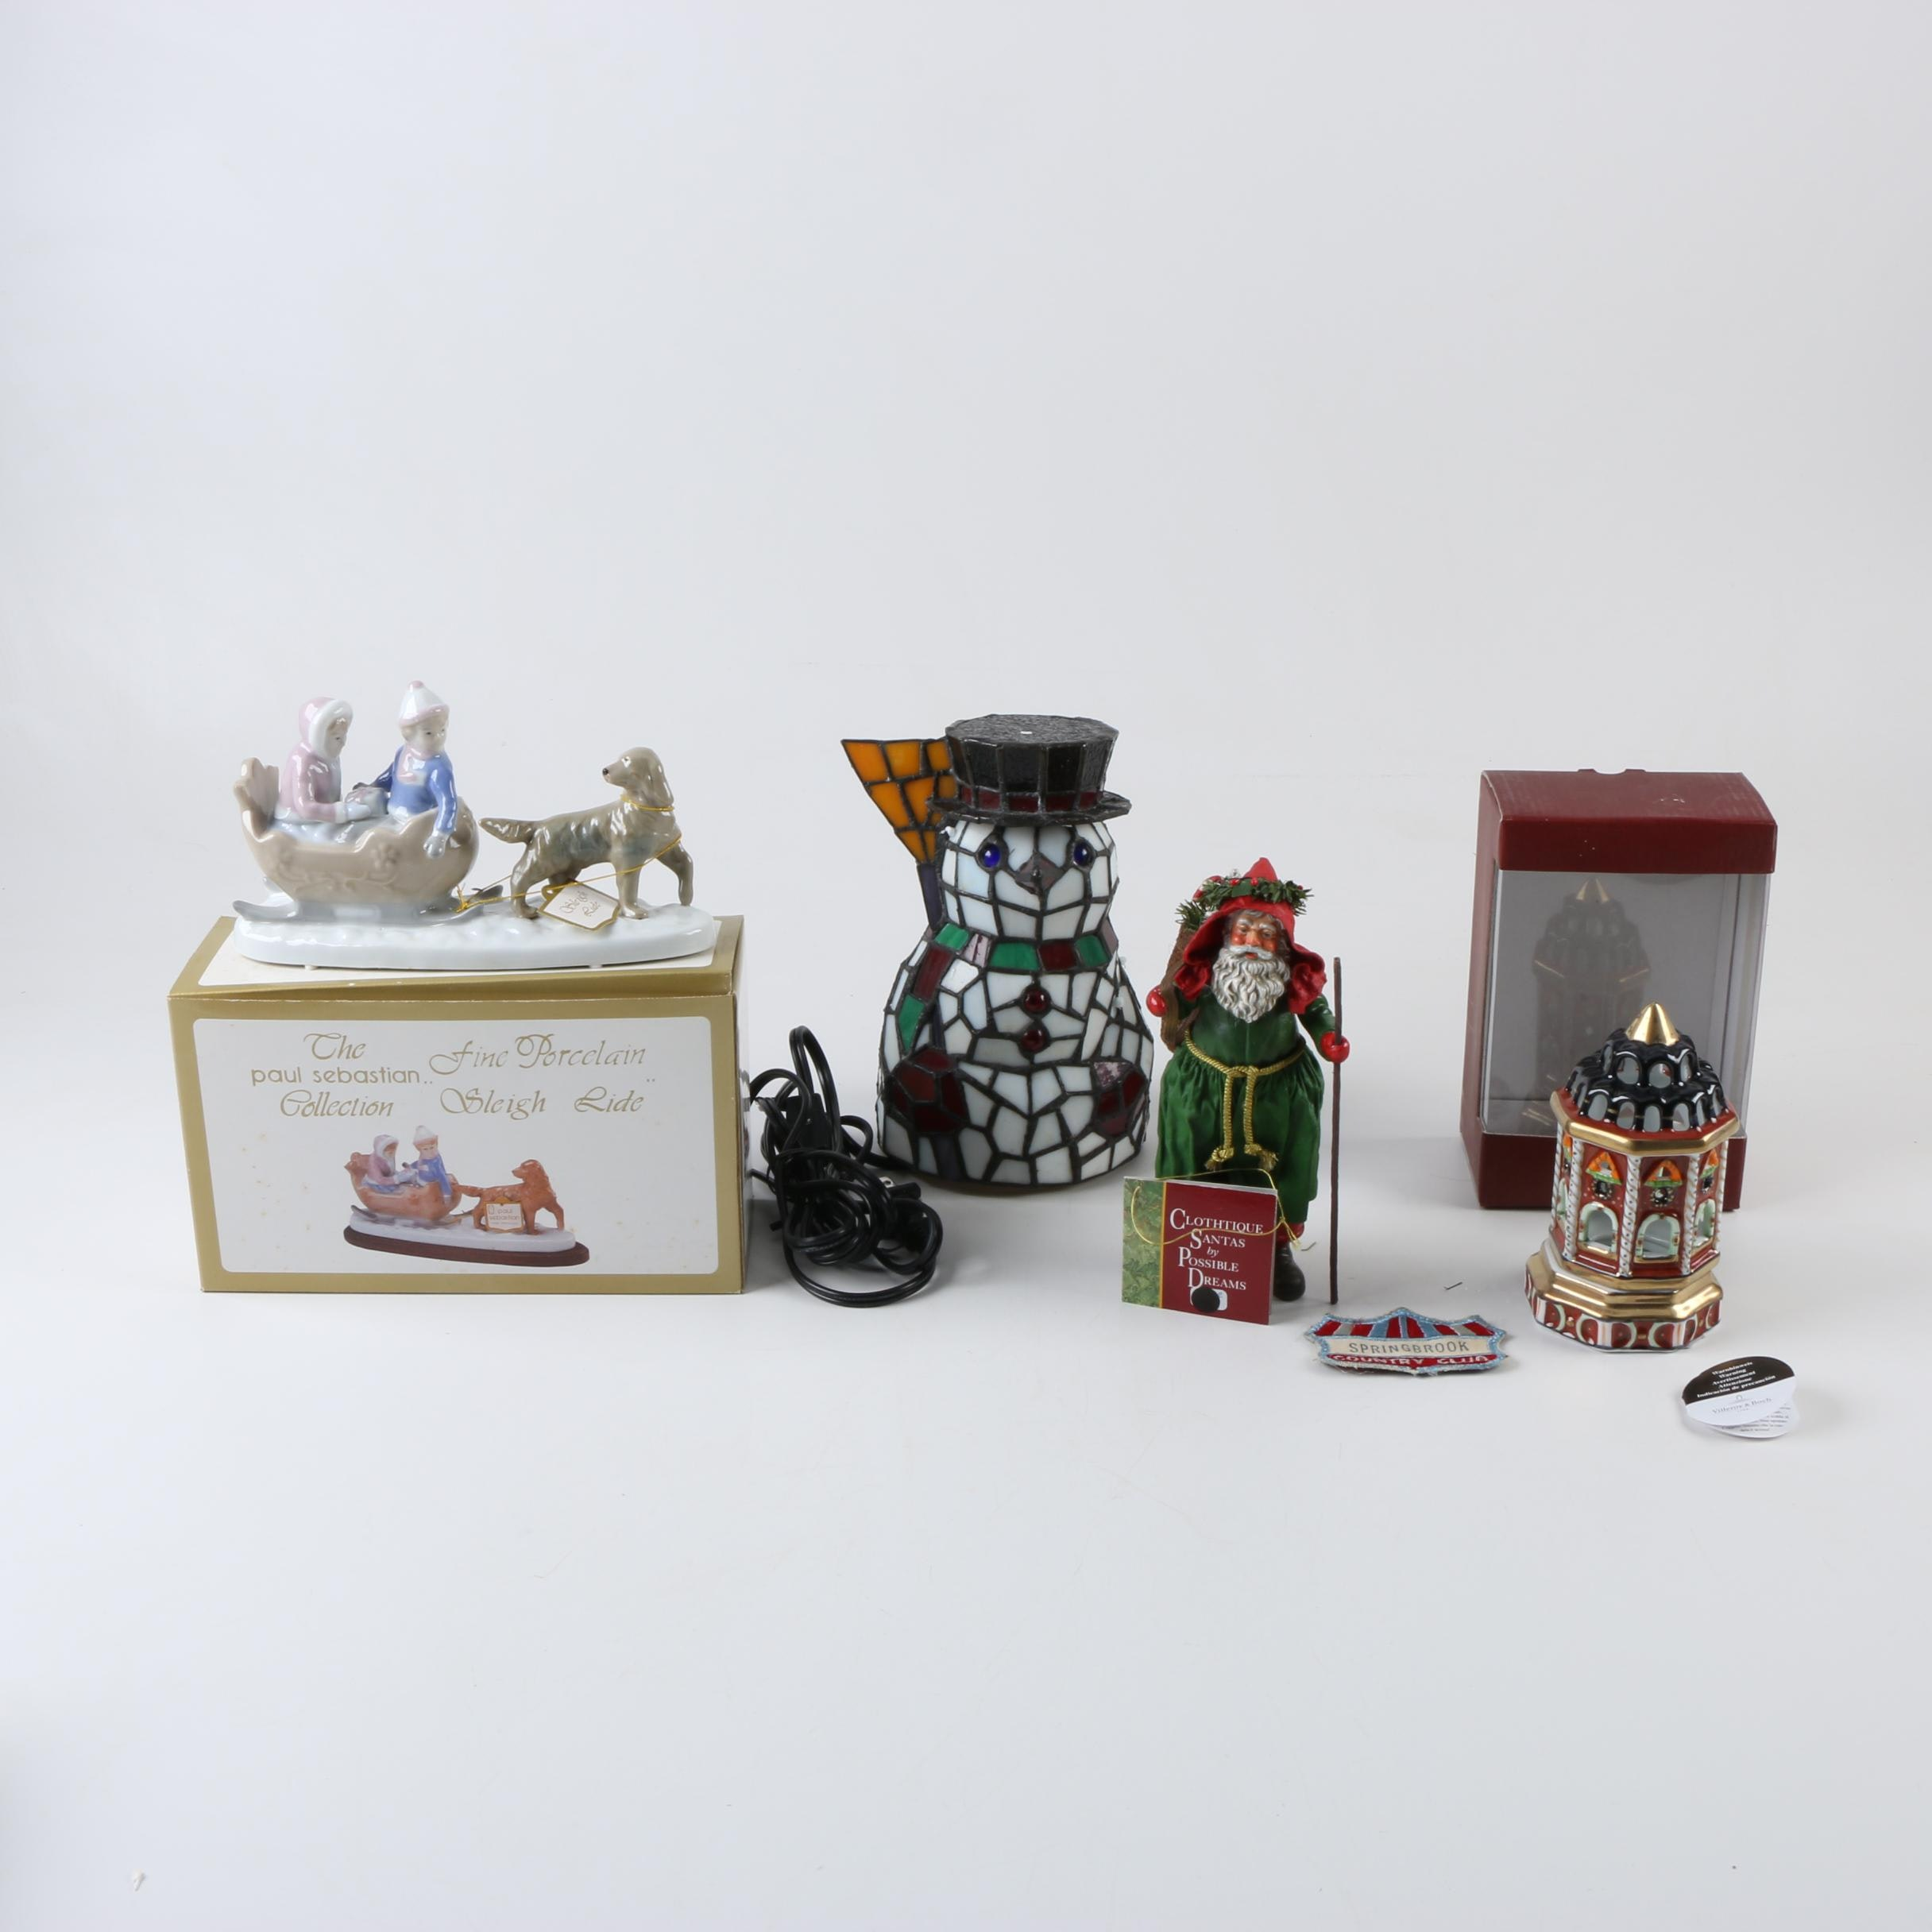 Christmas Lamp and Decorations featuring Paul Sebastian